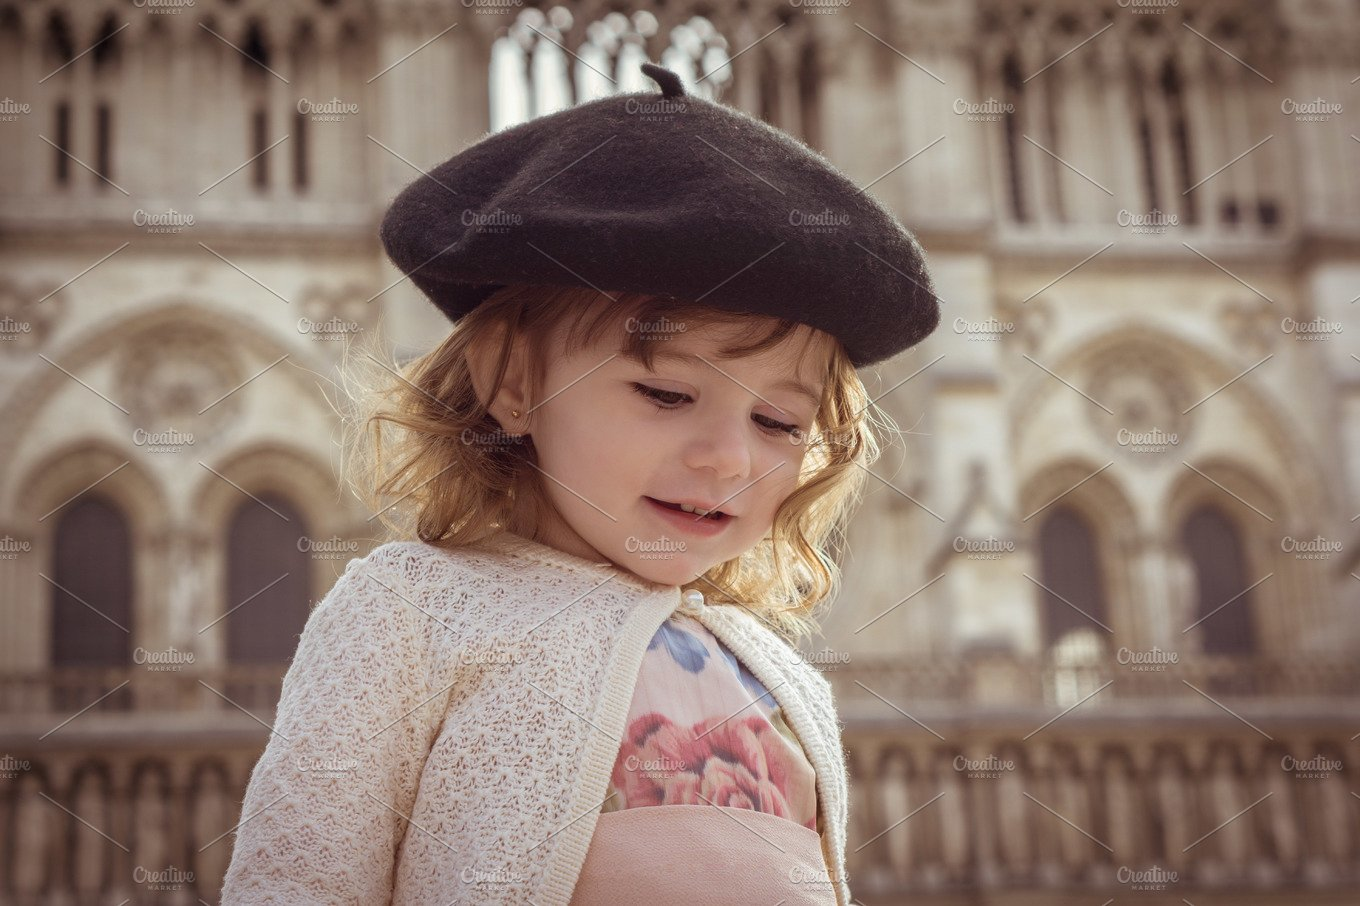 Baby girl with beret in Paris ~ Beauty   Fashion Photos ~ Creative Market 7648140c669